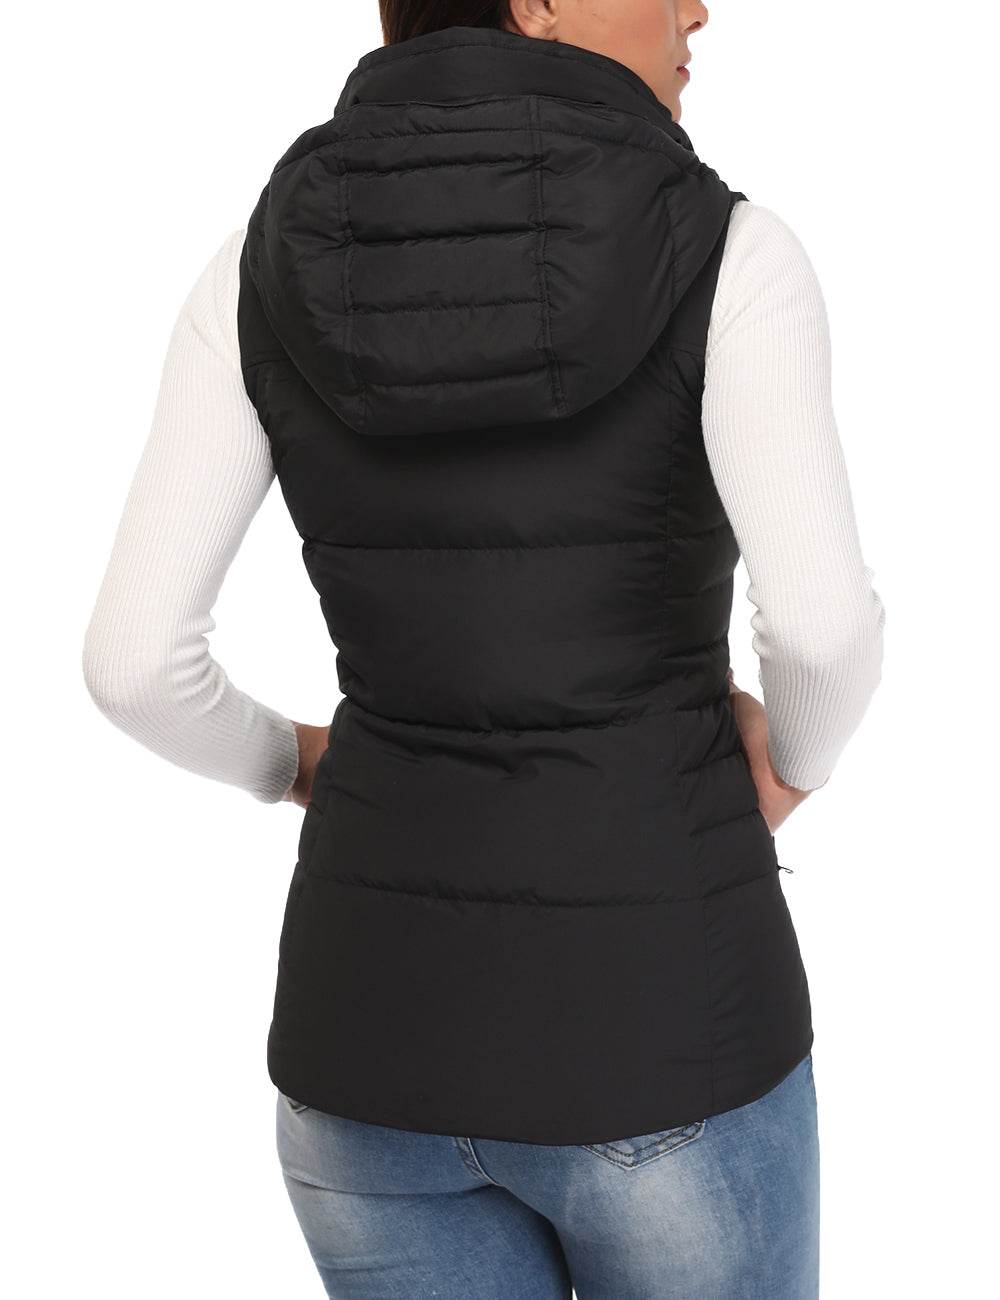 (Open-box) Women Heated Down Vest - Extra Slim Fit - ORORO